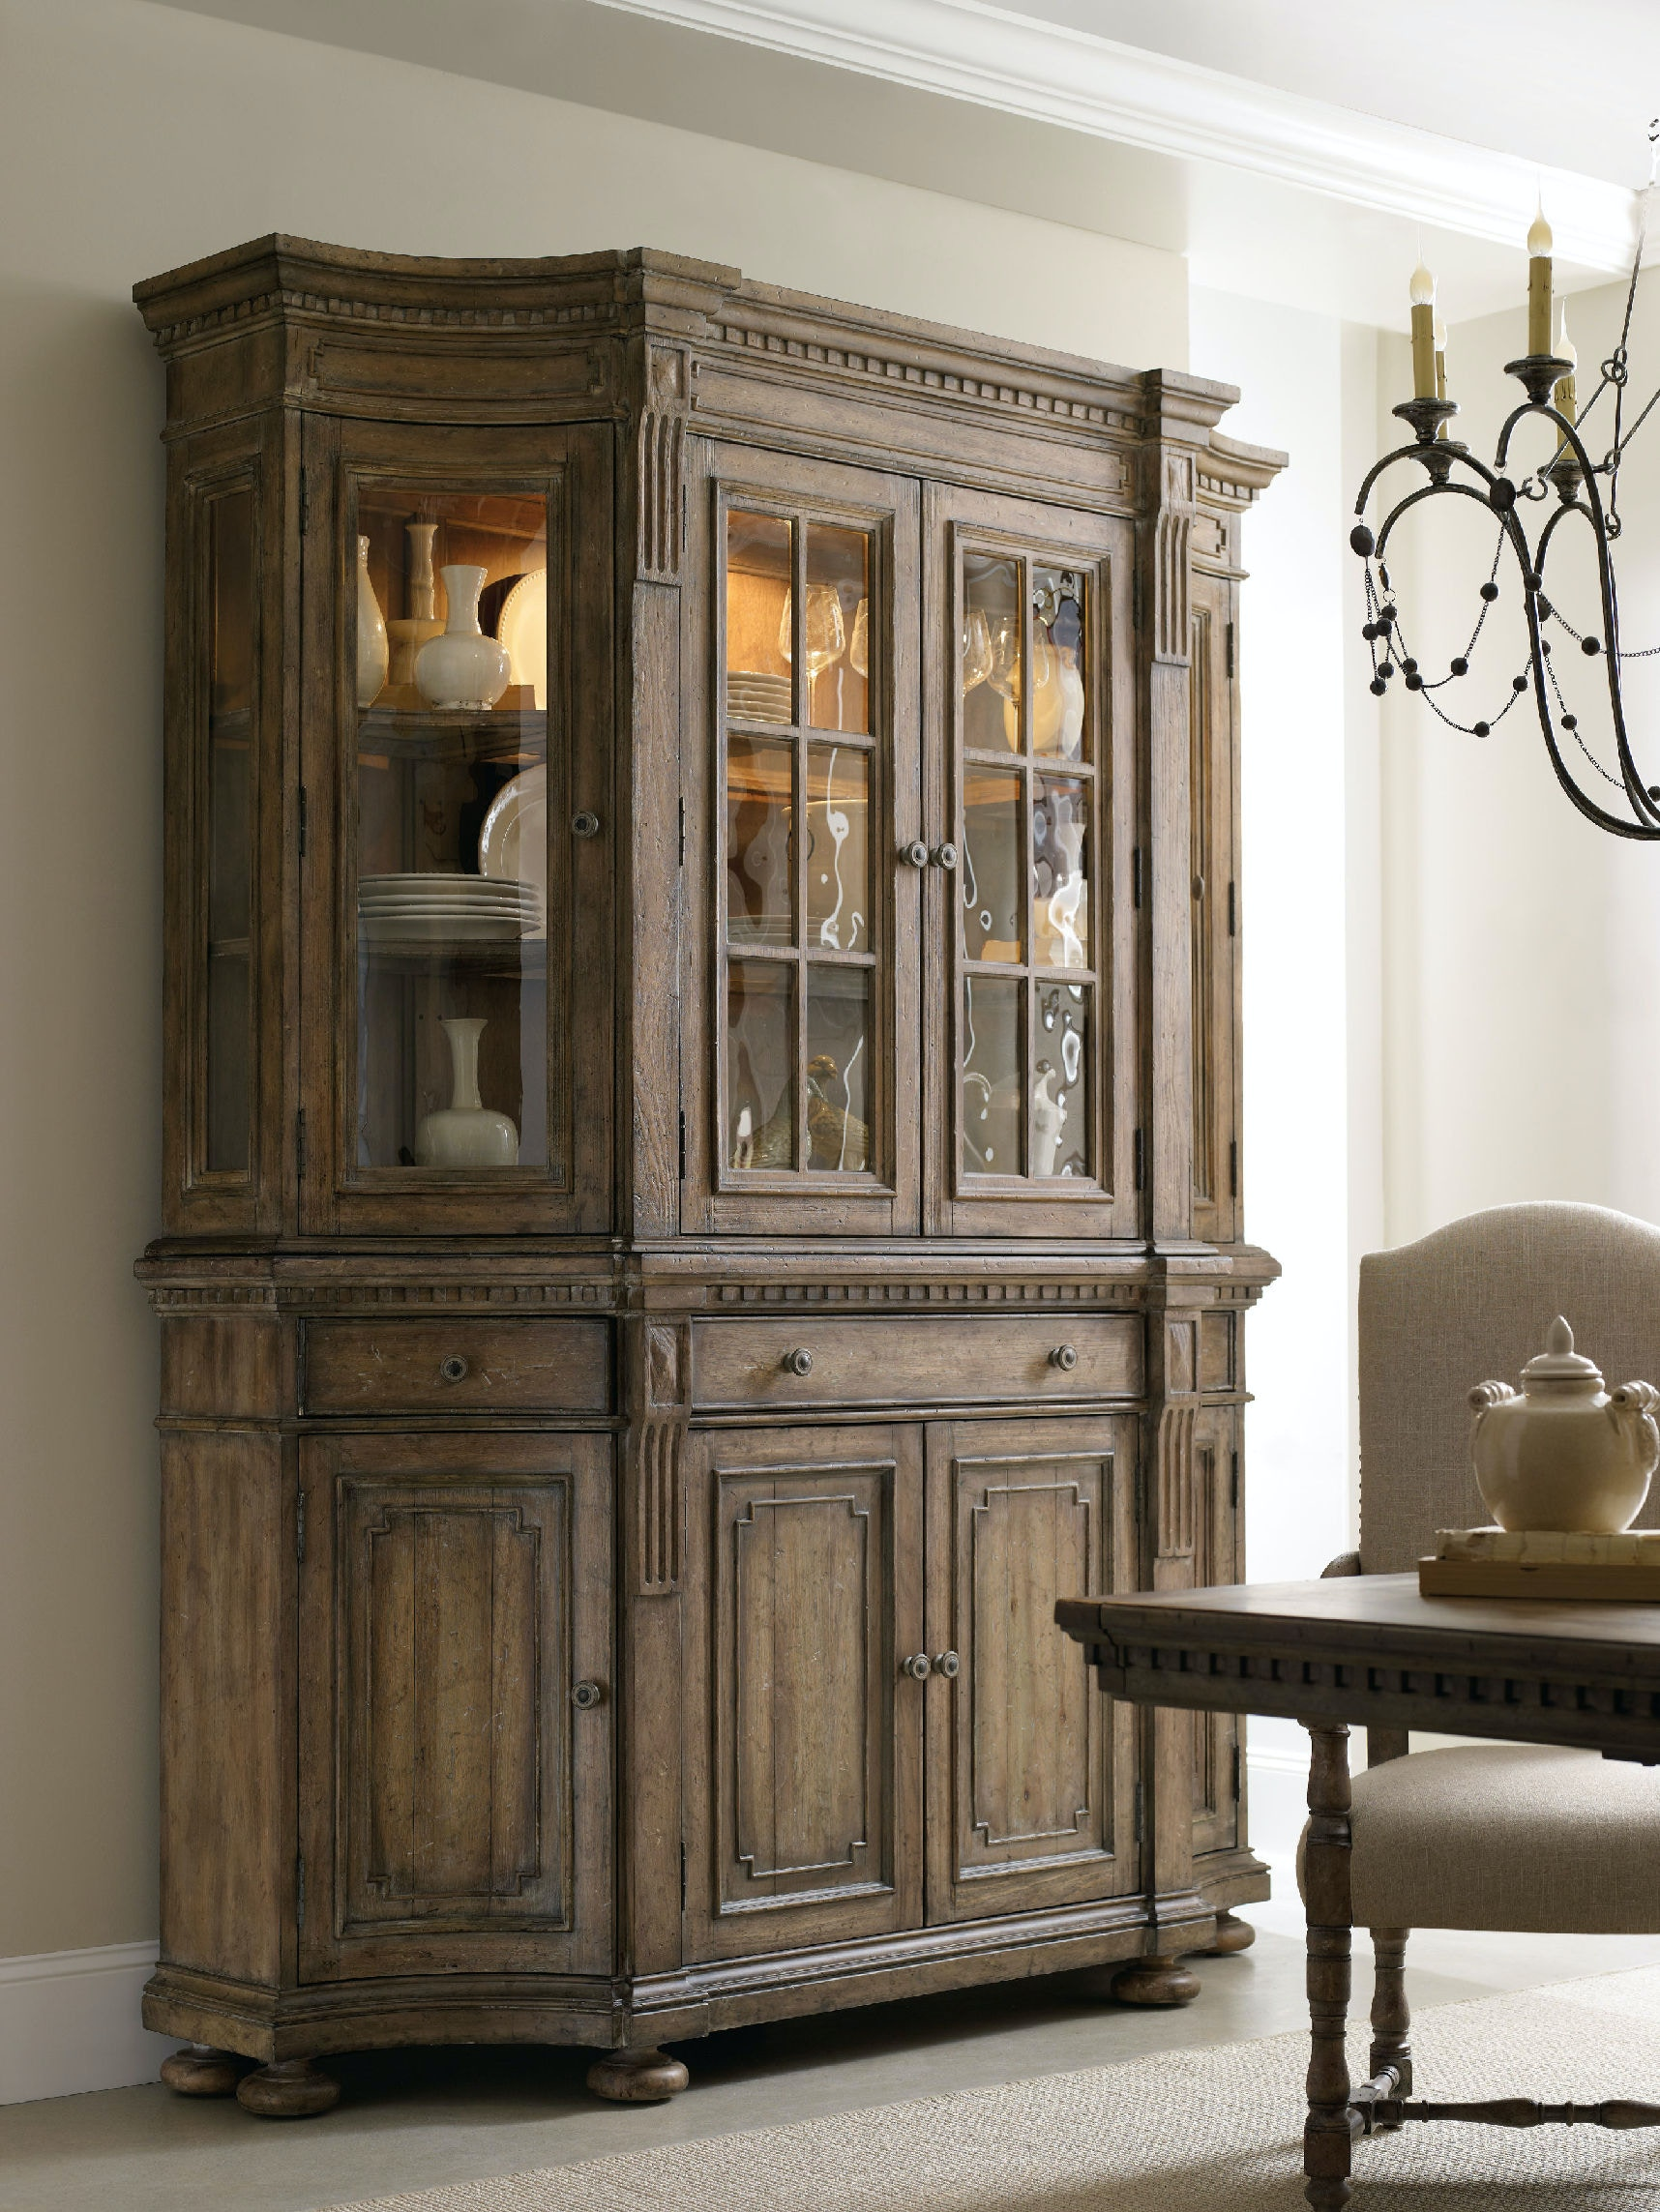 Living Room China Cabinet Hooker Furniture Living Room Sorella Shaped Credenza 5107 85001